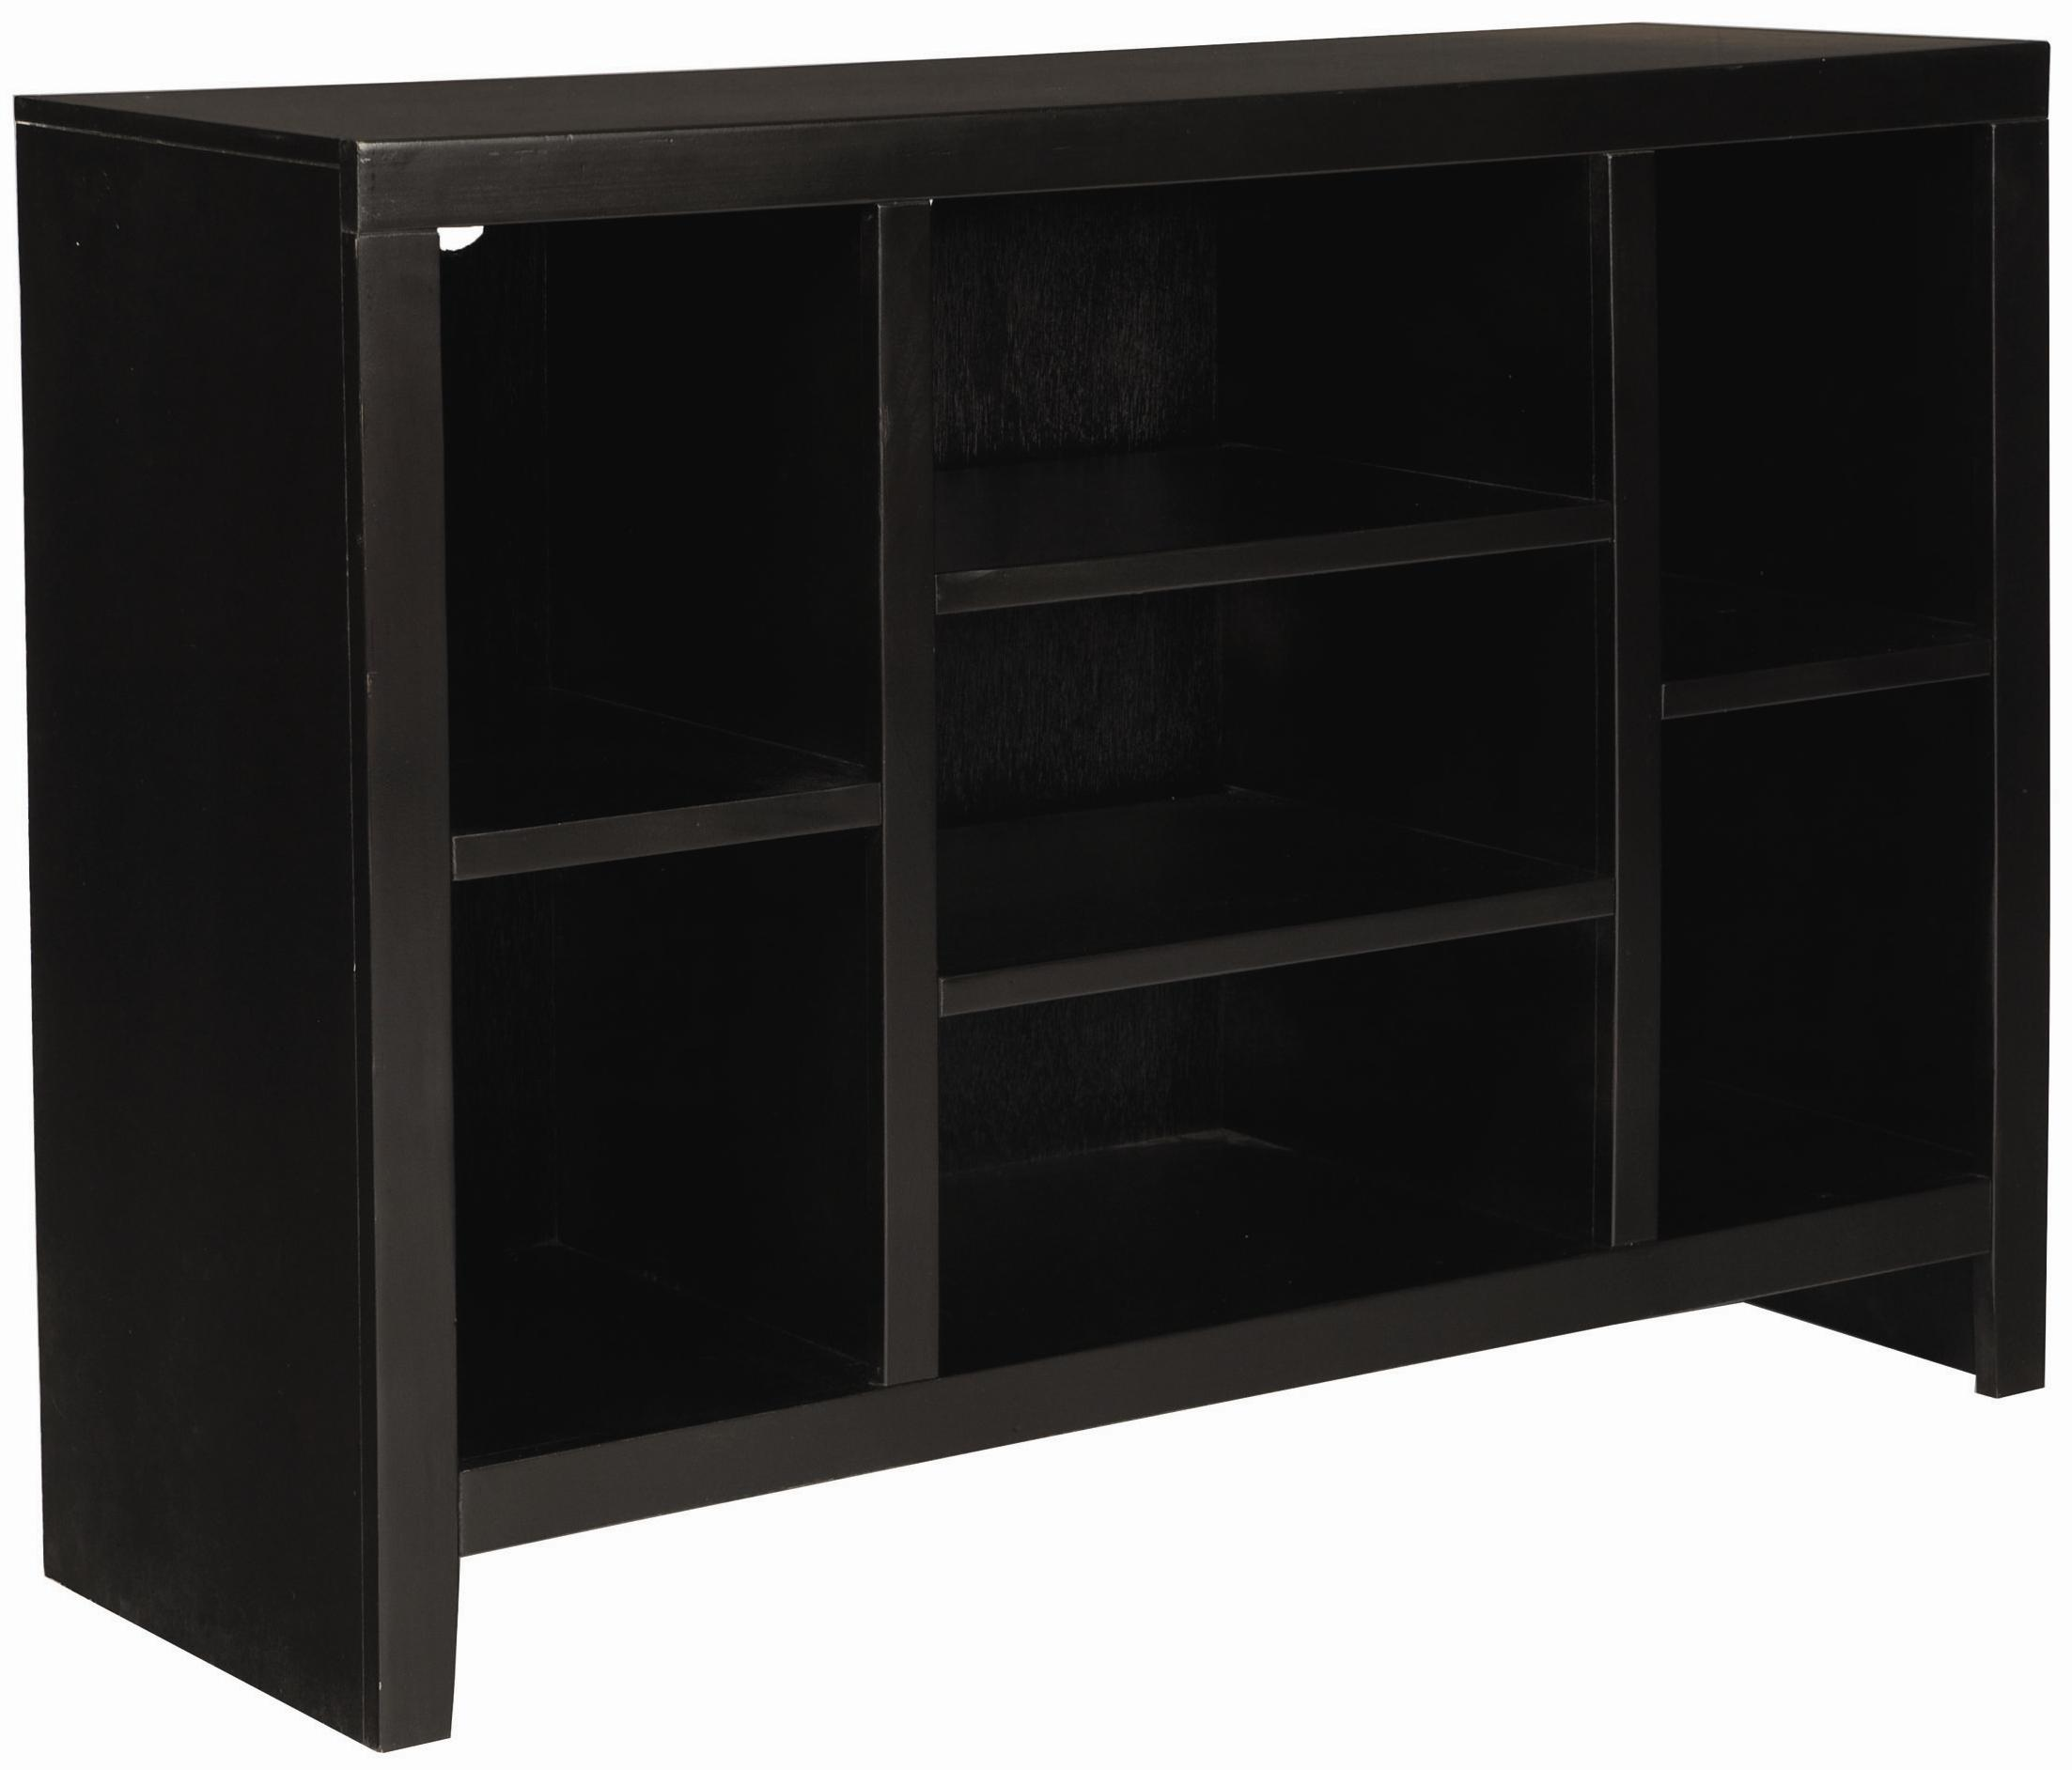 Aspenhome Essentials Lifestyle 49 Inch Open TV Console - Item Number: CL1024-BLK